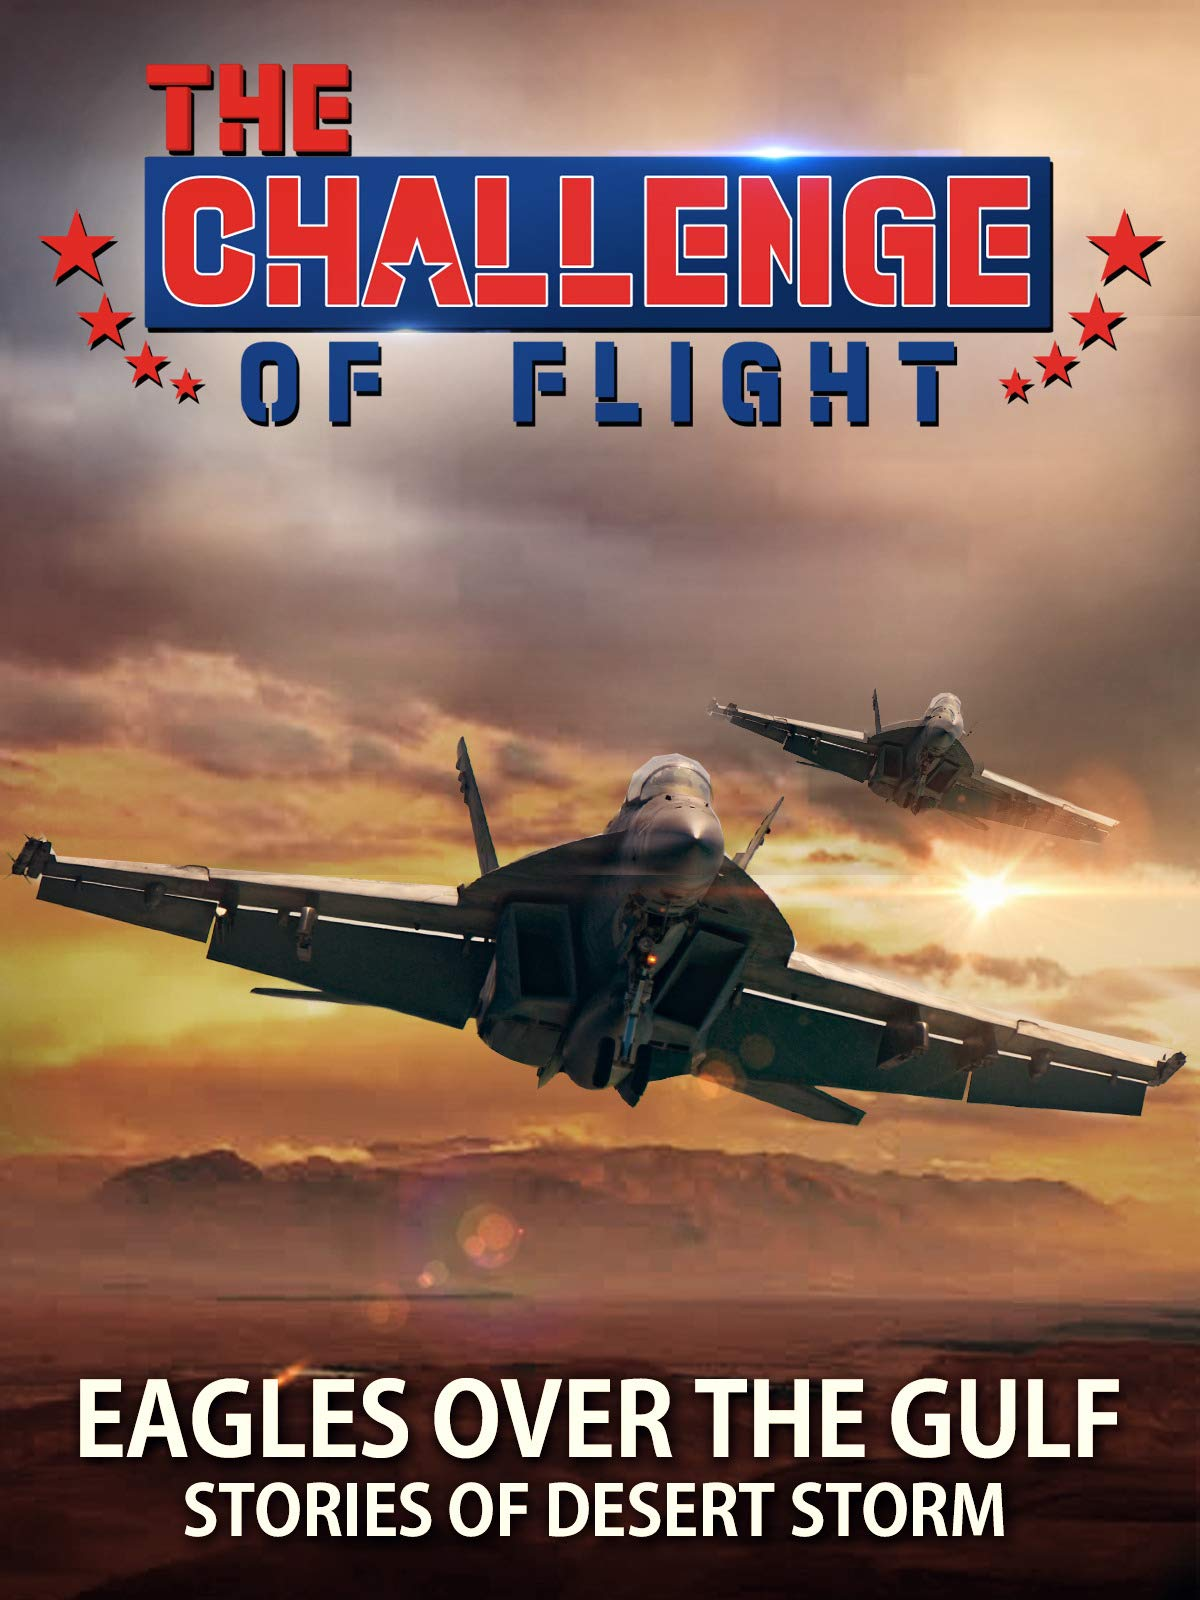 The Challenge of Flight - Eagles Over The Gulf Desert Storm Stories